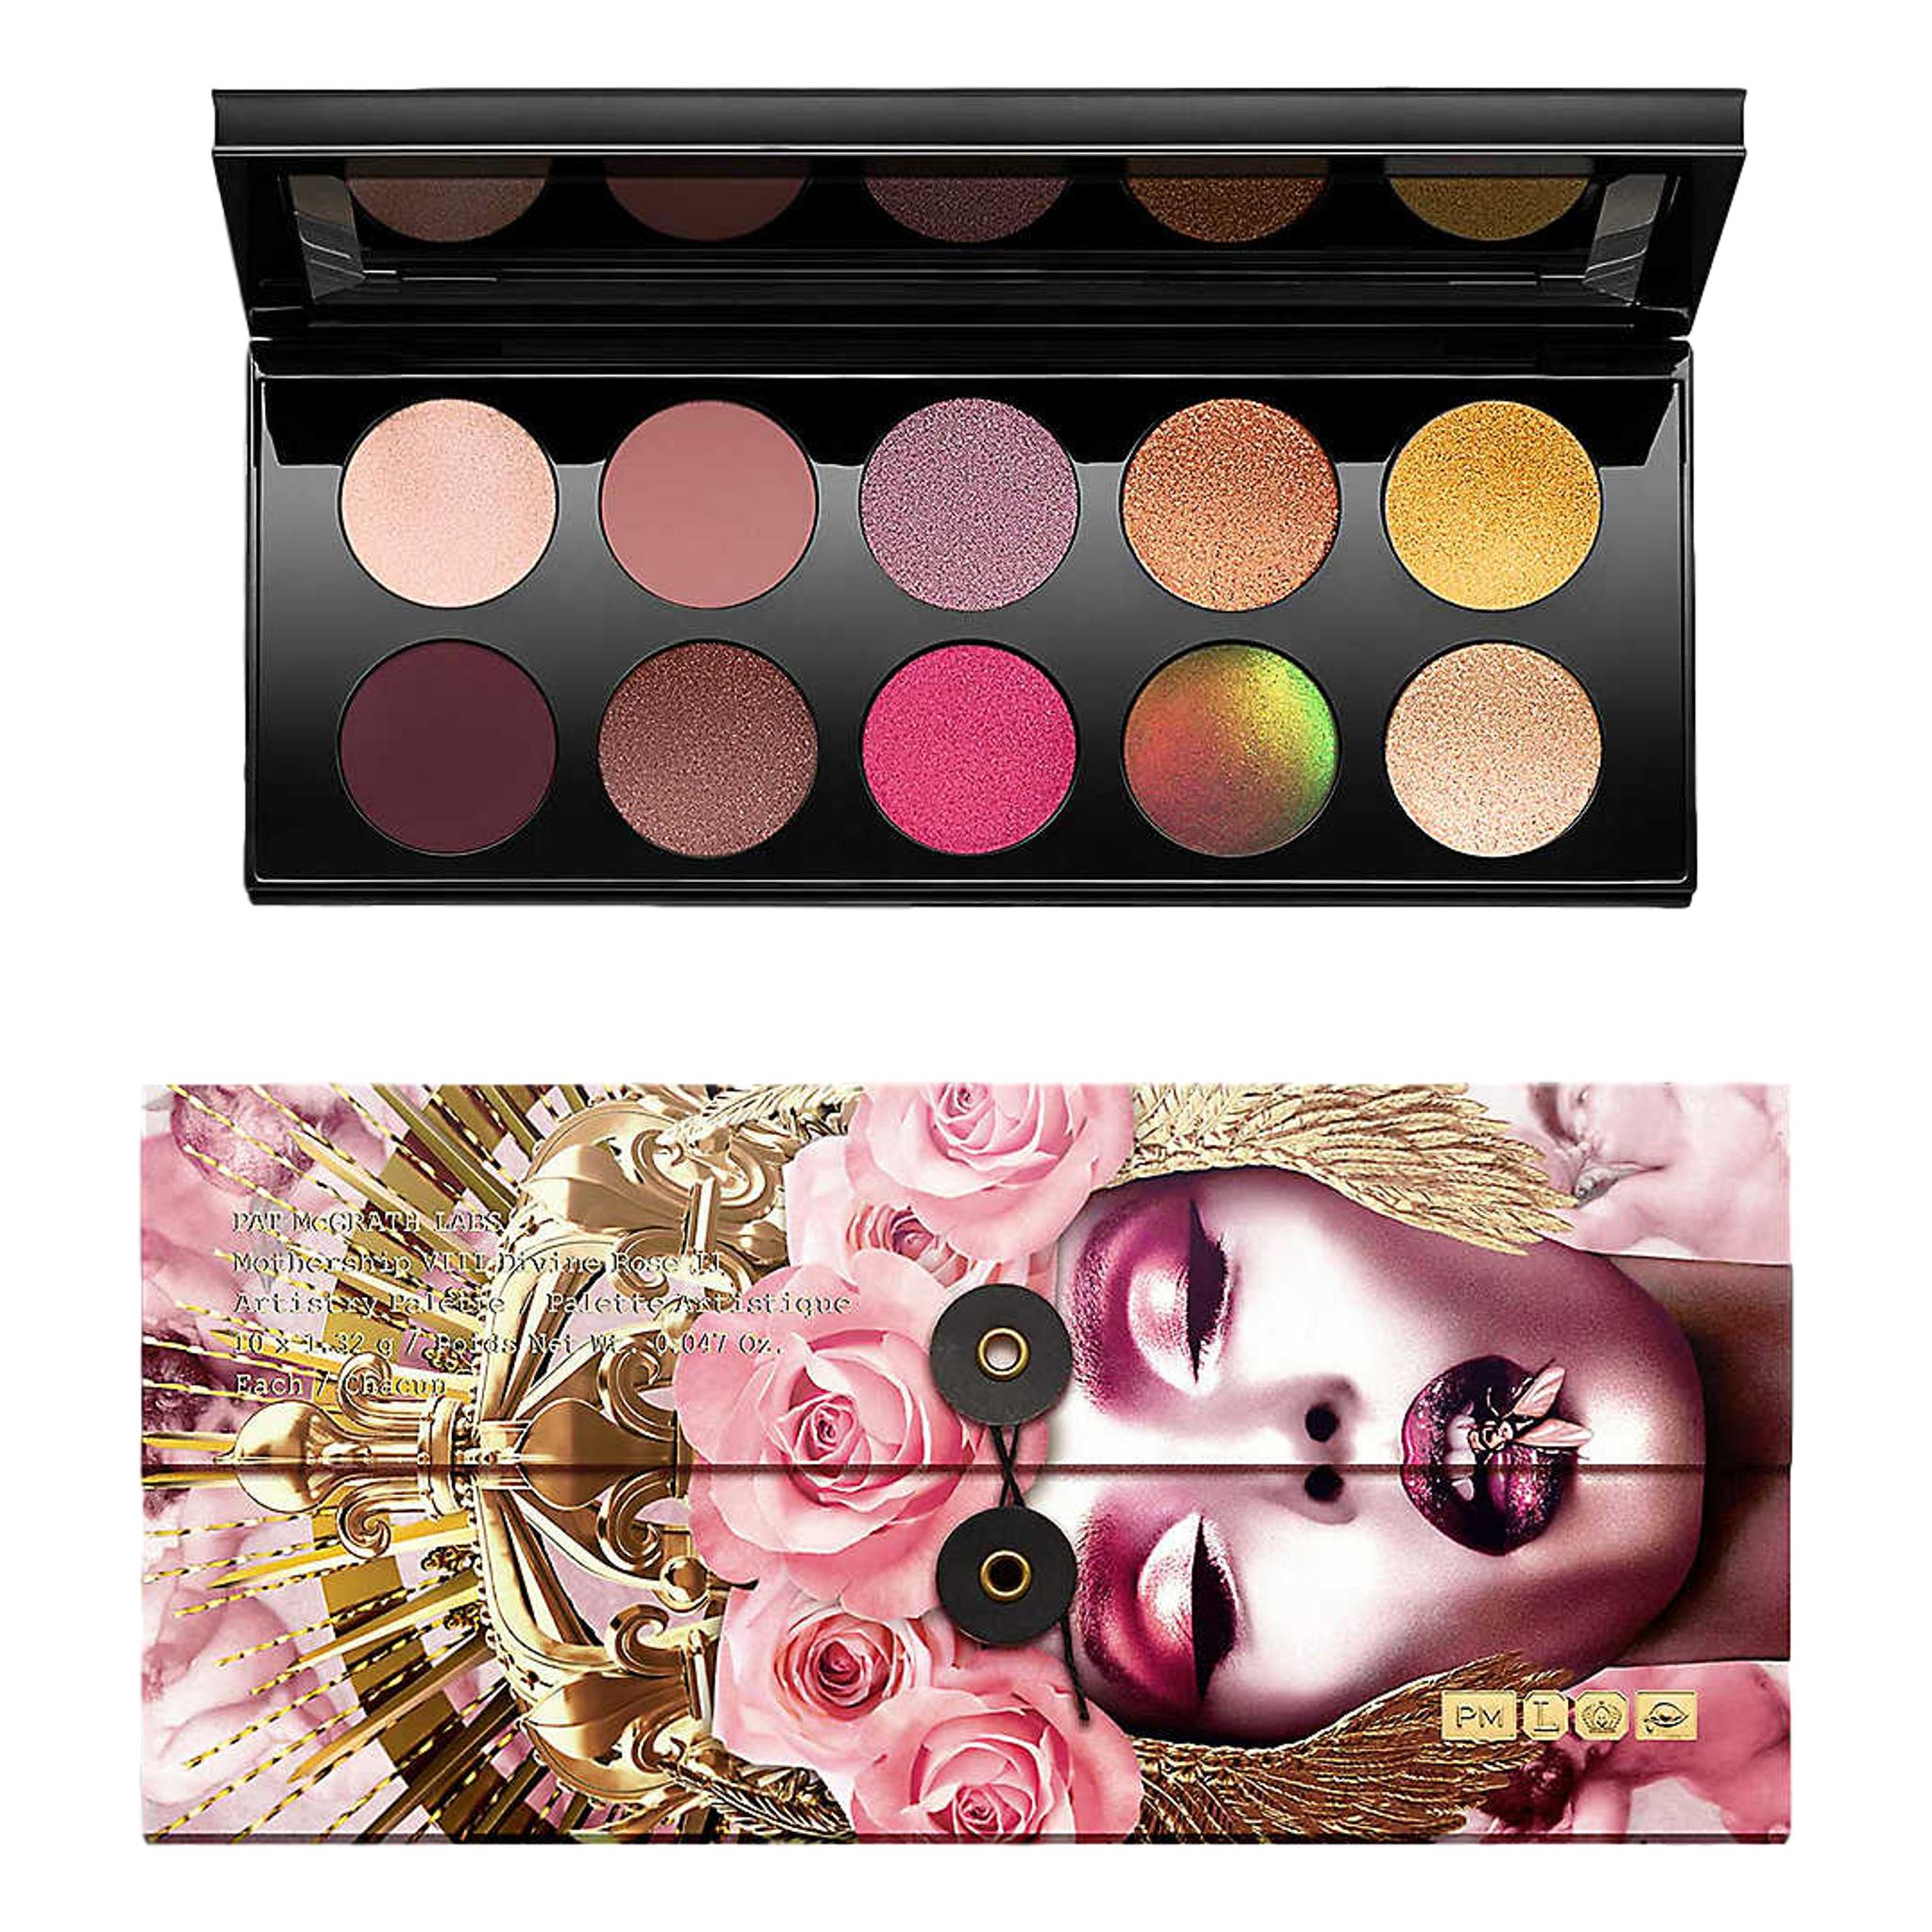 PAT MCGRATH LABS Mothership VIII: Divine Rose II Artistry Palette, 13.2g, eyeshadow palette, London Loves Beauty